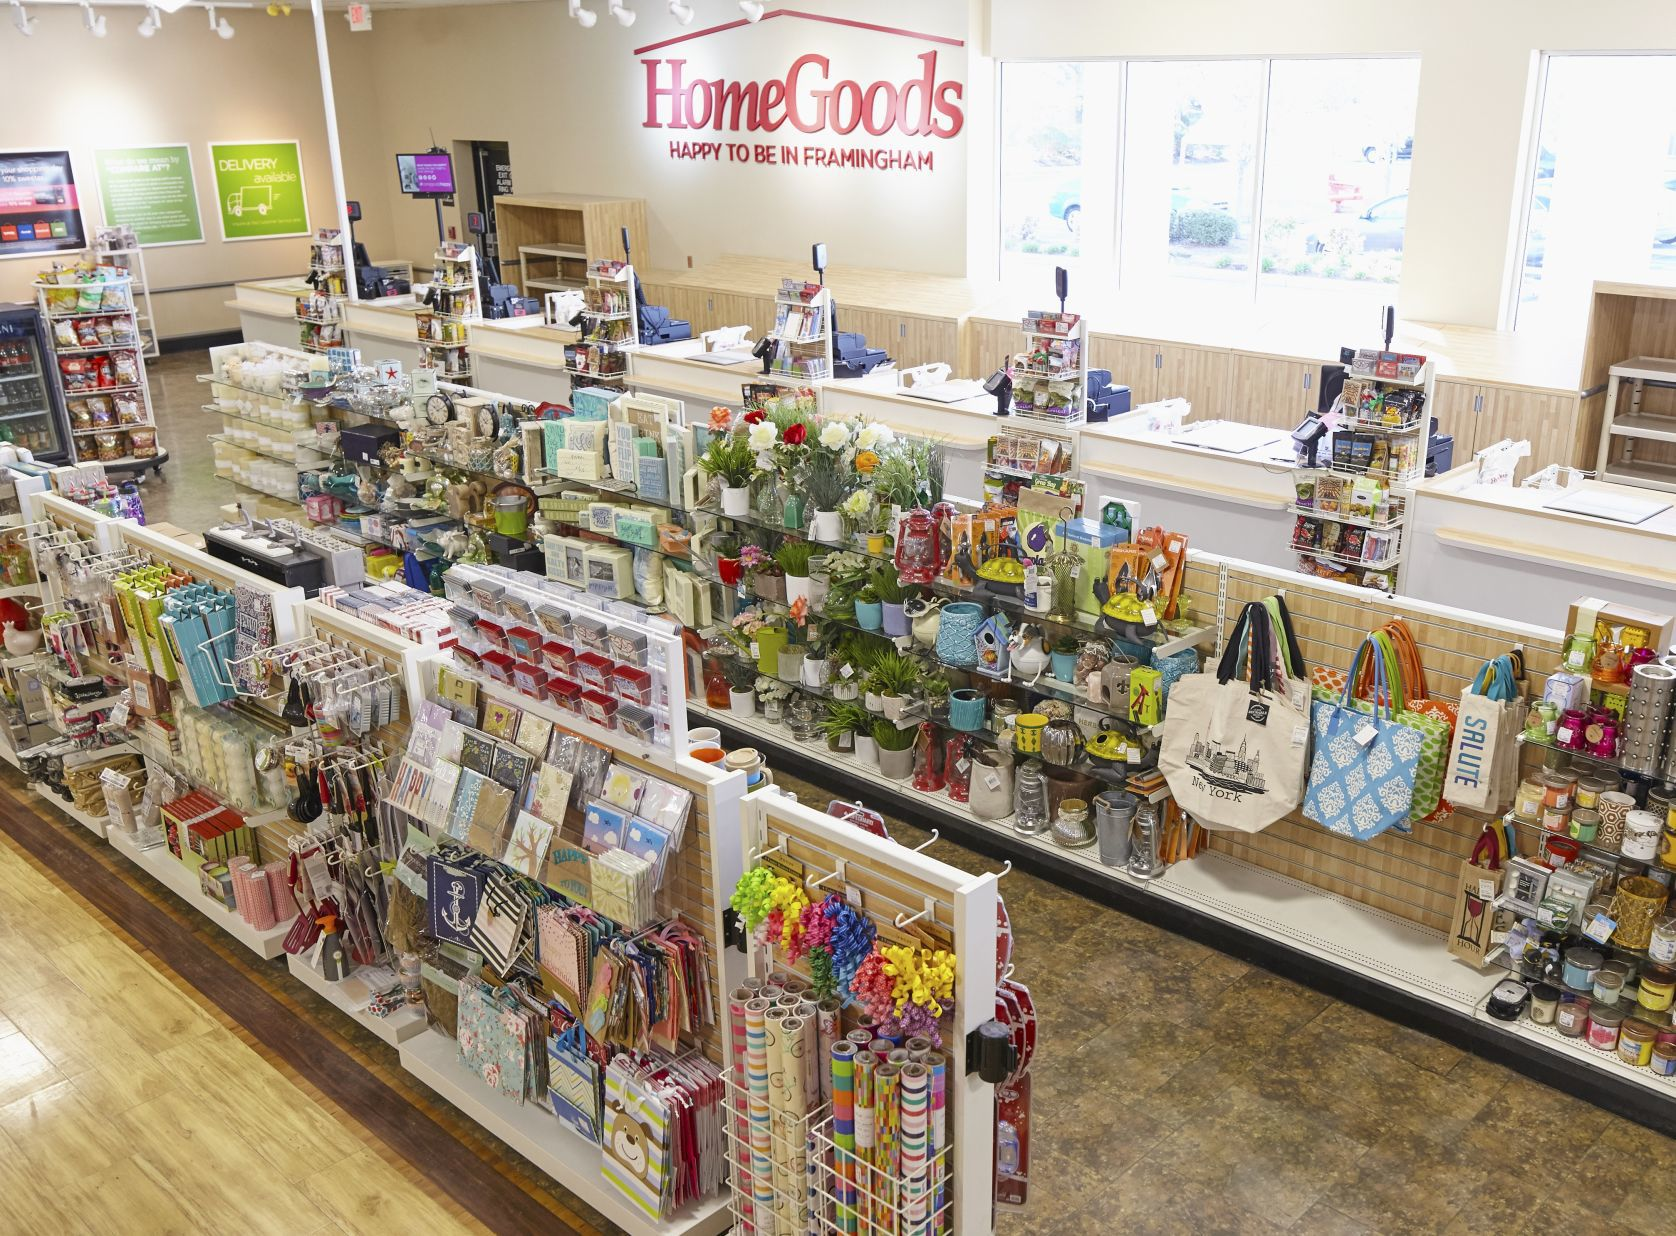 Amazing A HomeGoods Store In Framingham, Mass.